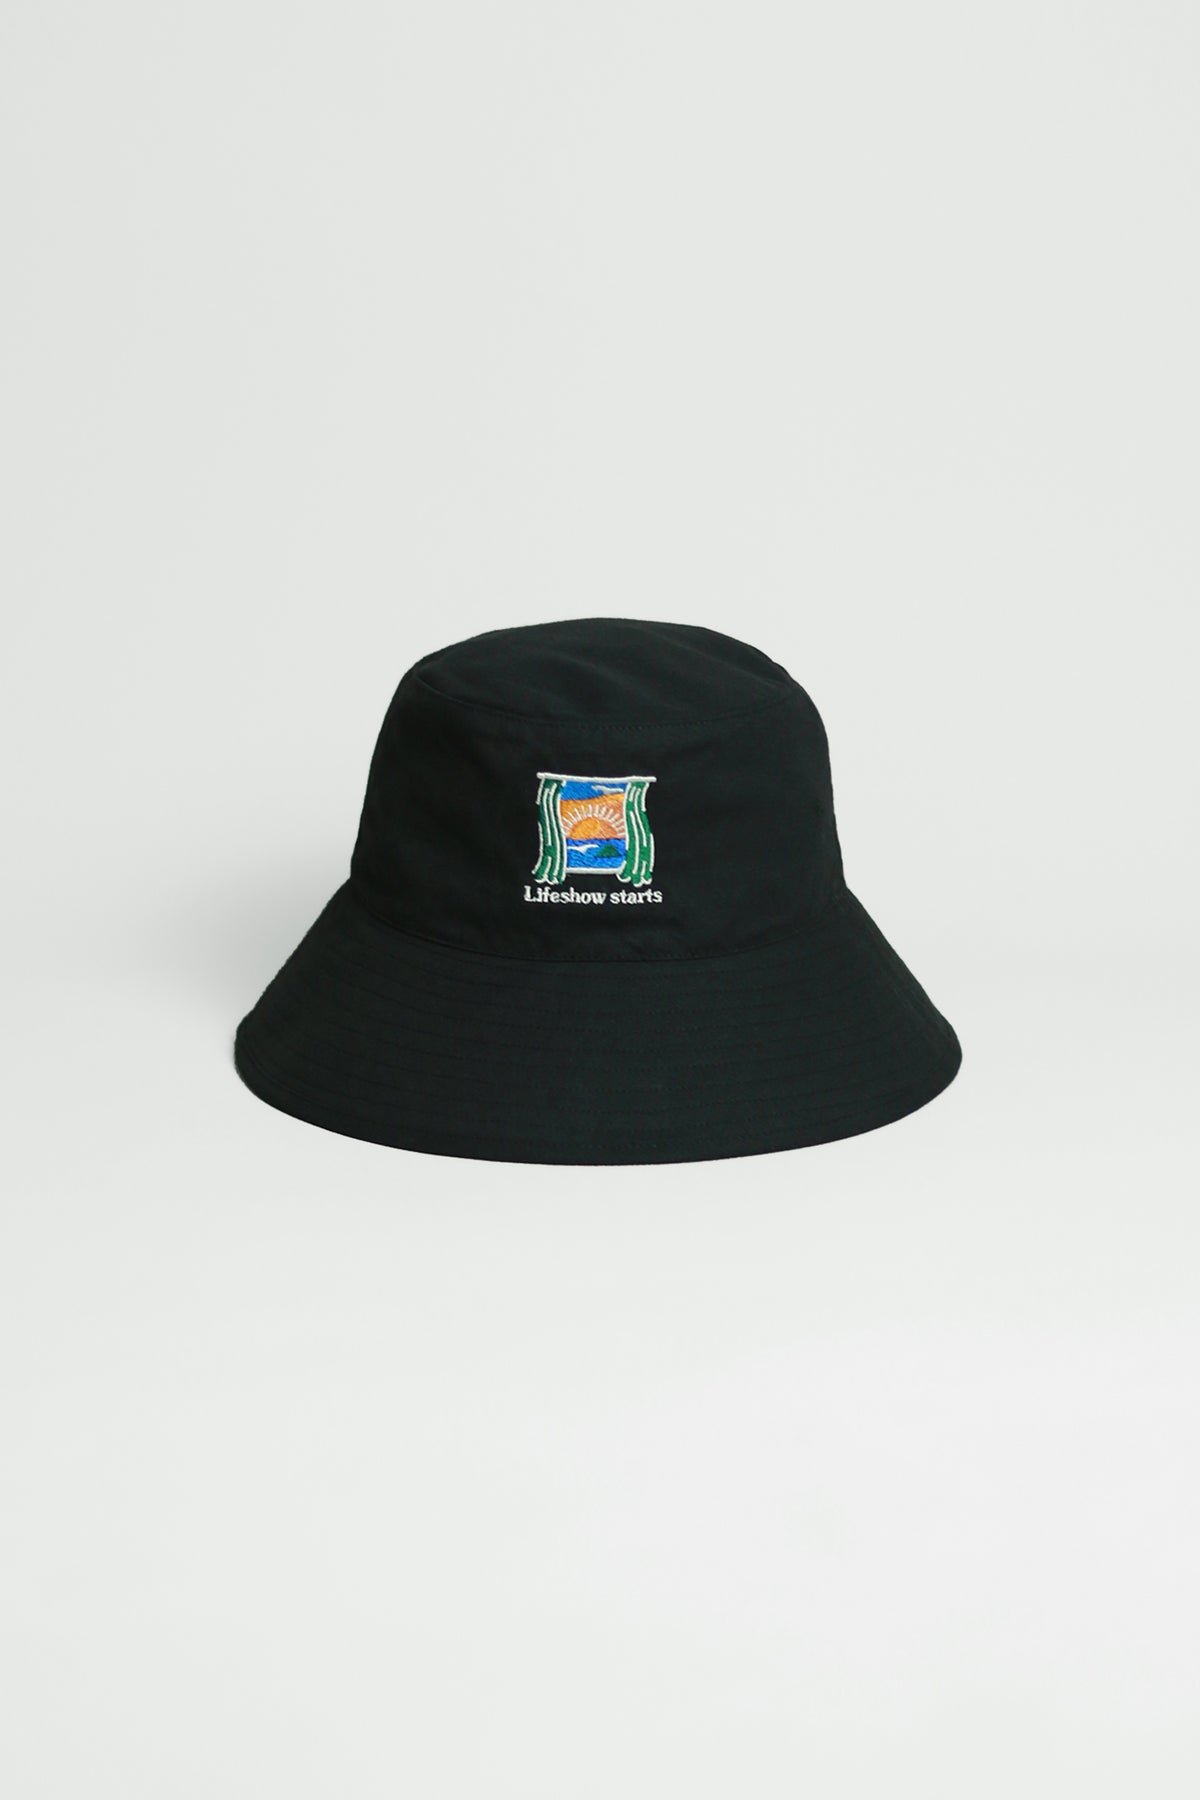 "Graphic Embroidery Tee - ""Lifeshow Starts"" Bucket Hat"